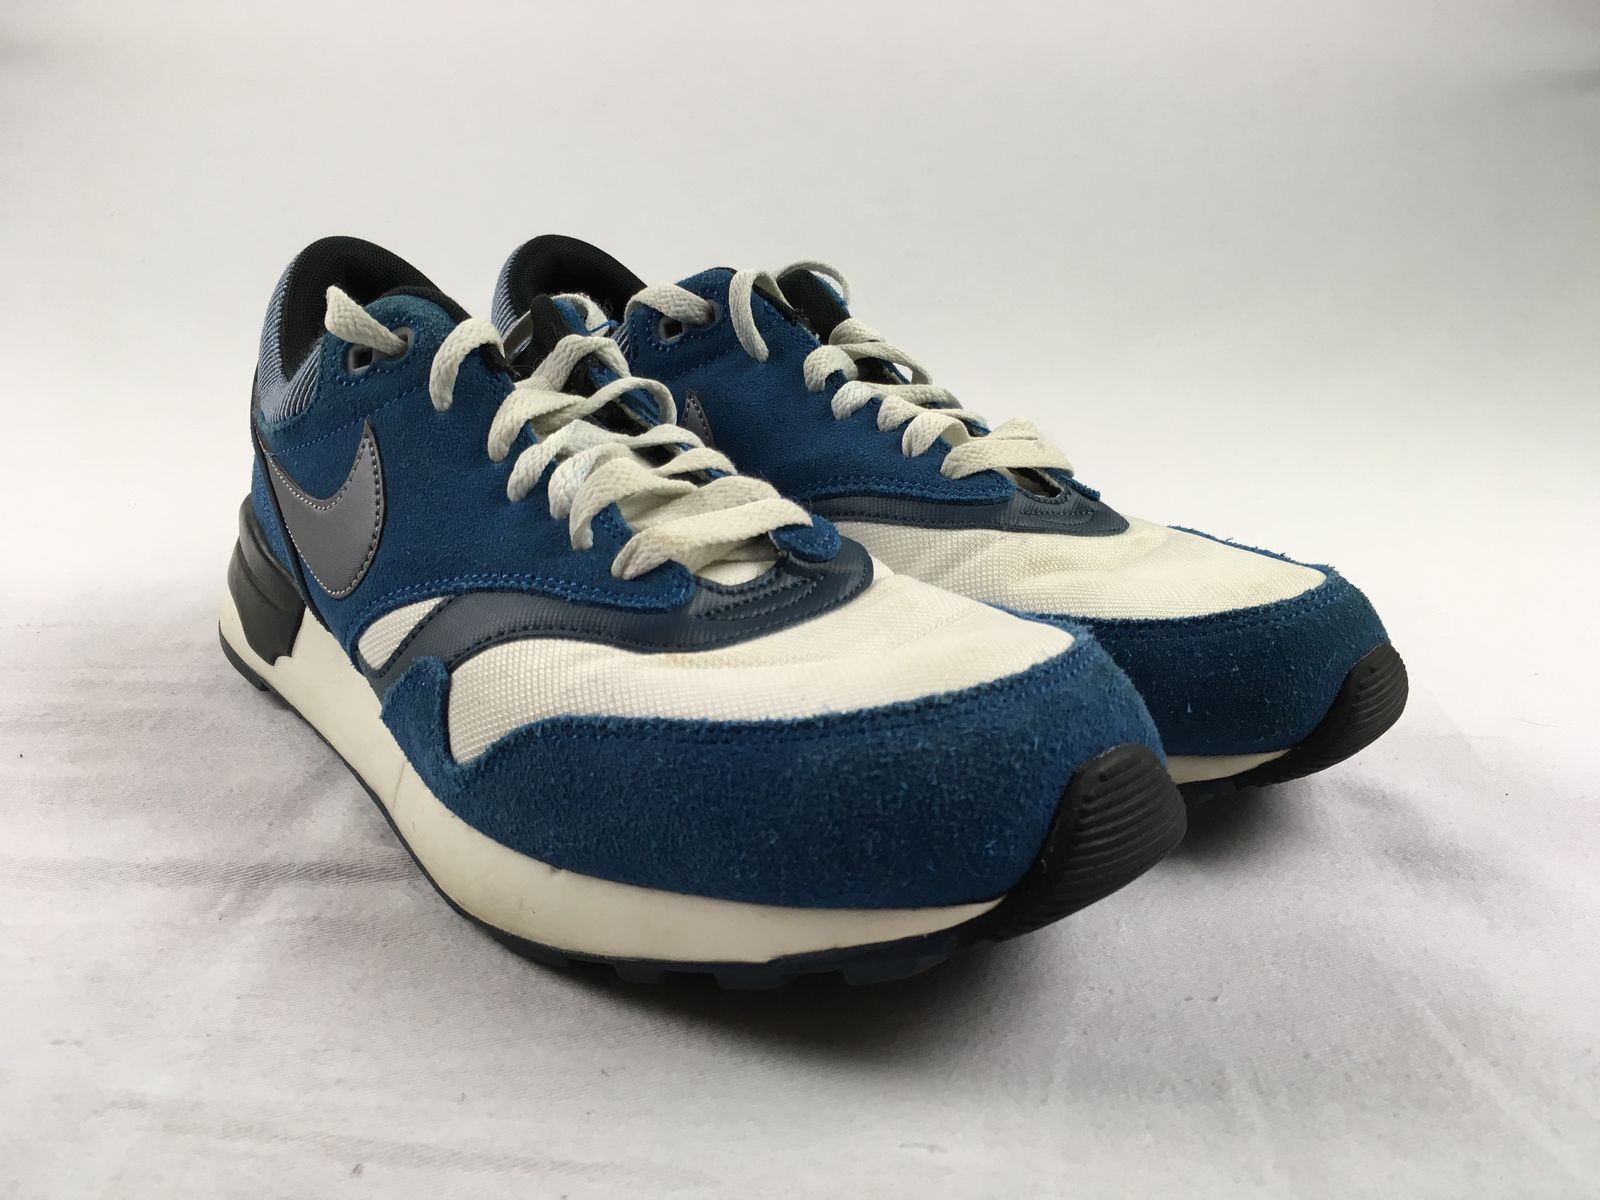 uk availability cee38 09d60 Details about Nike AIr Odyssey - BlueWhite Running, Cross Training (Mens  10.5) - Used